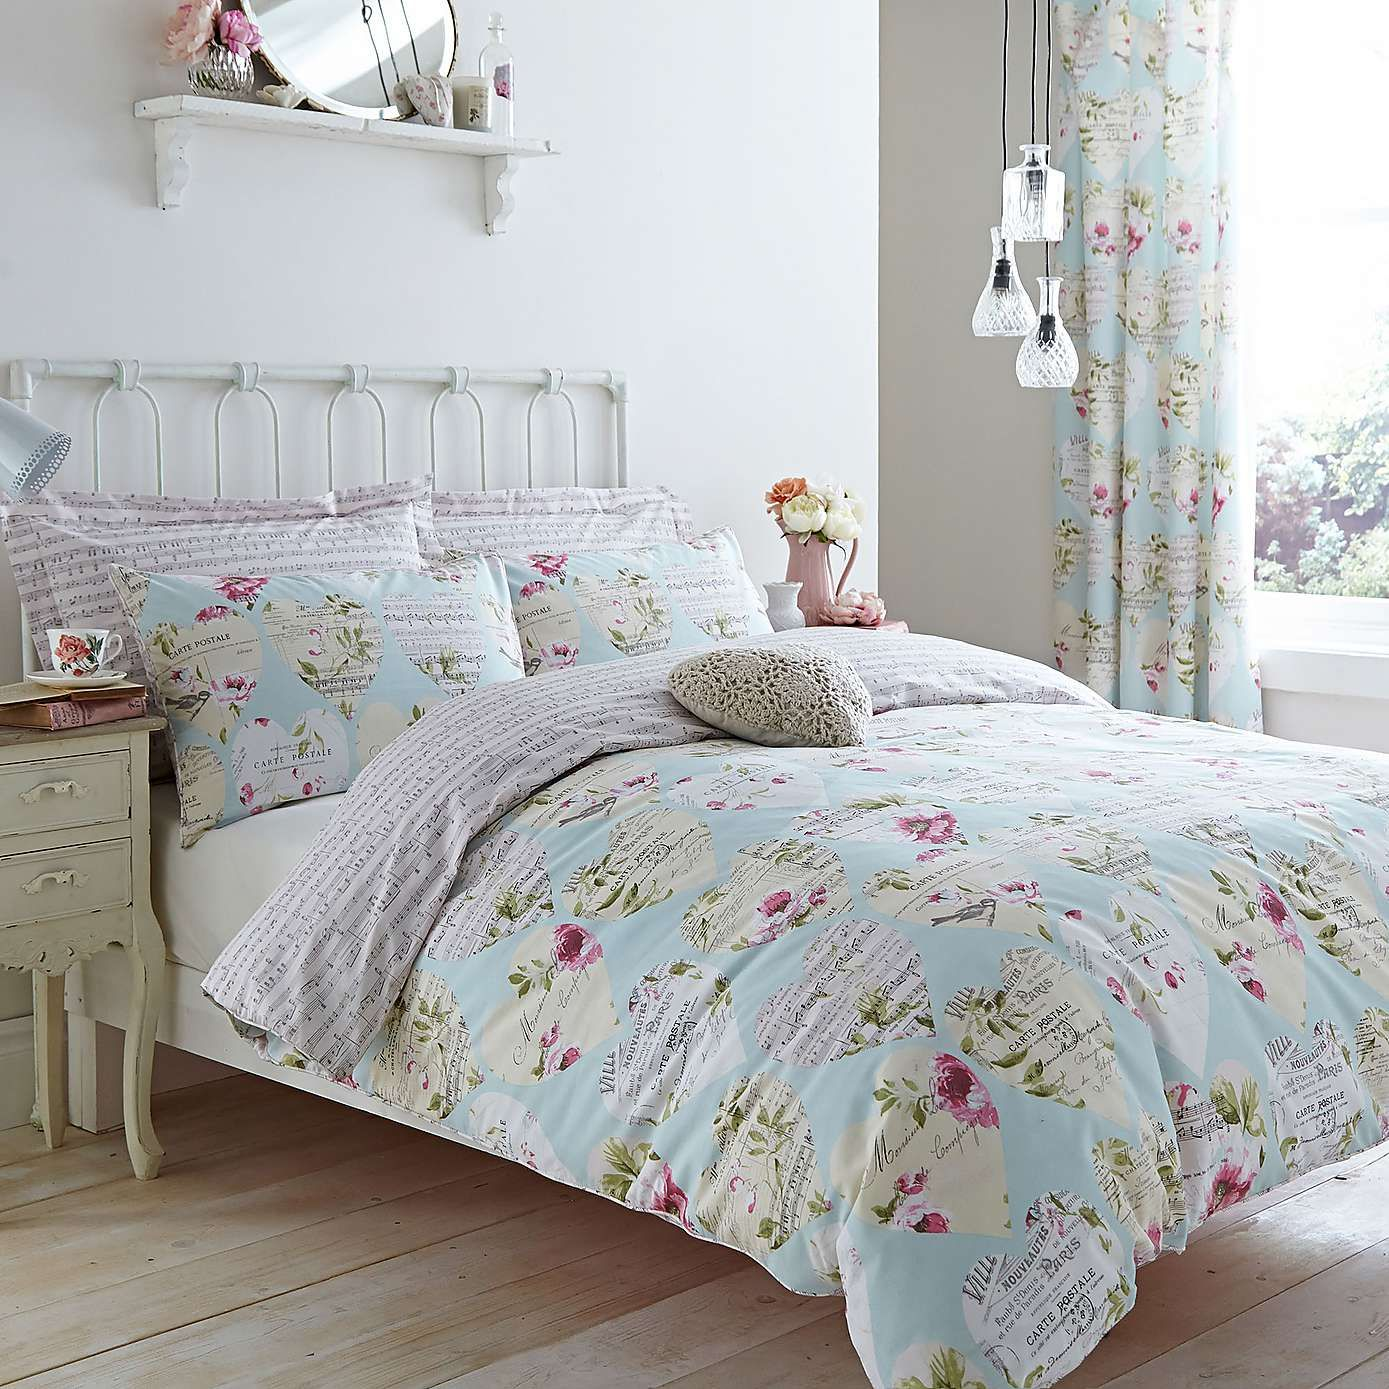 Bedroom Decor Dunelm